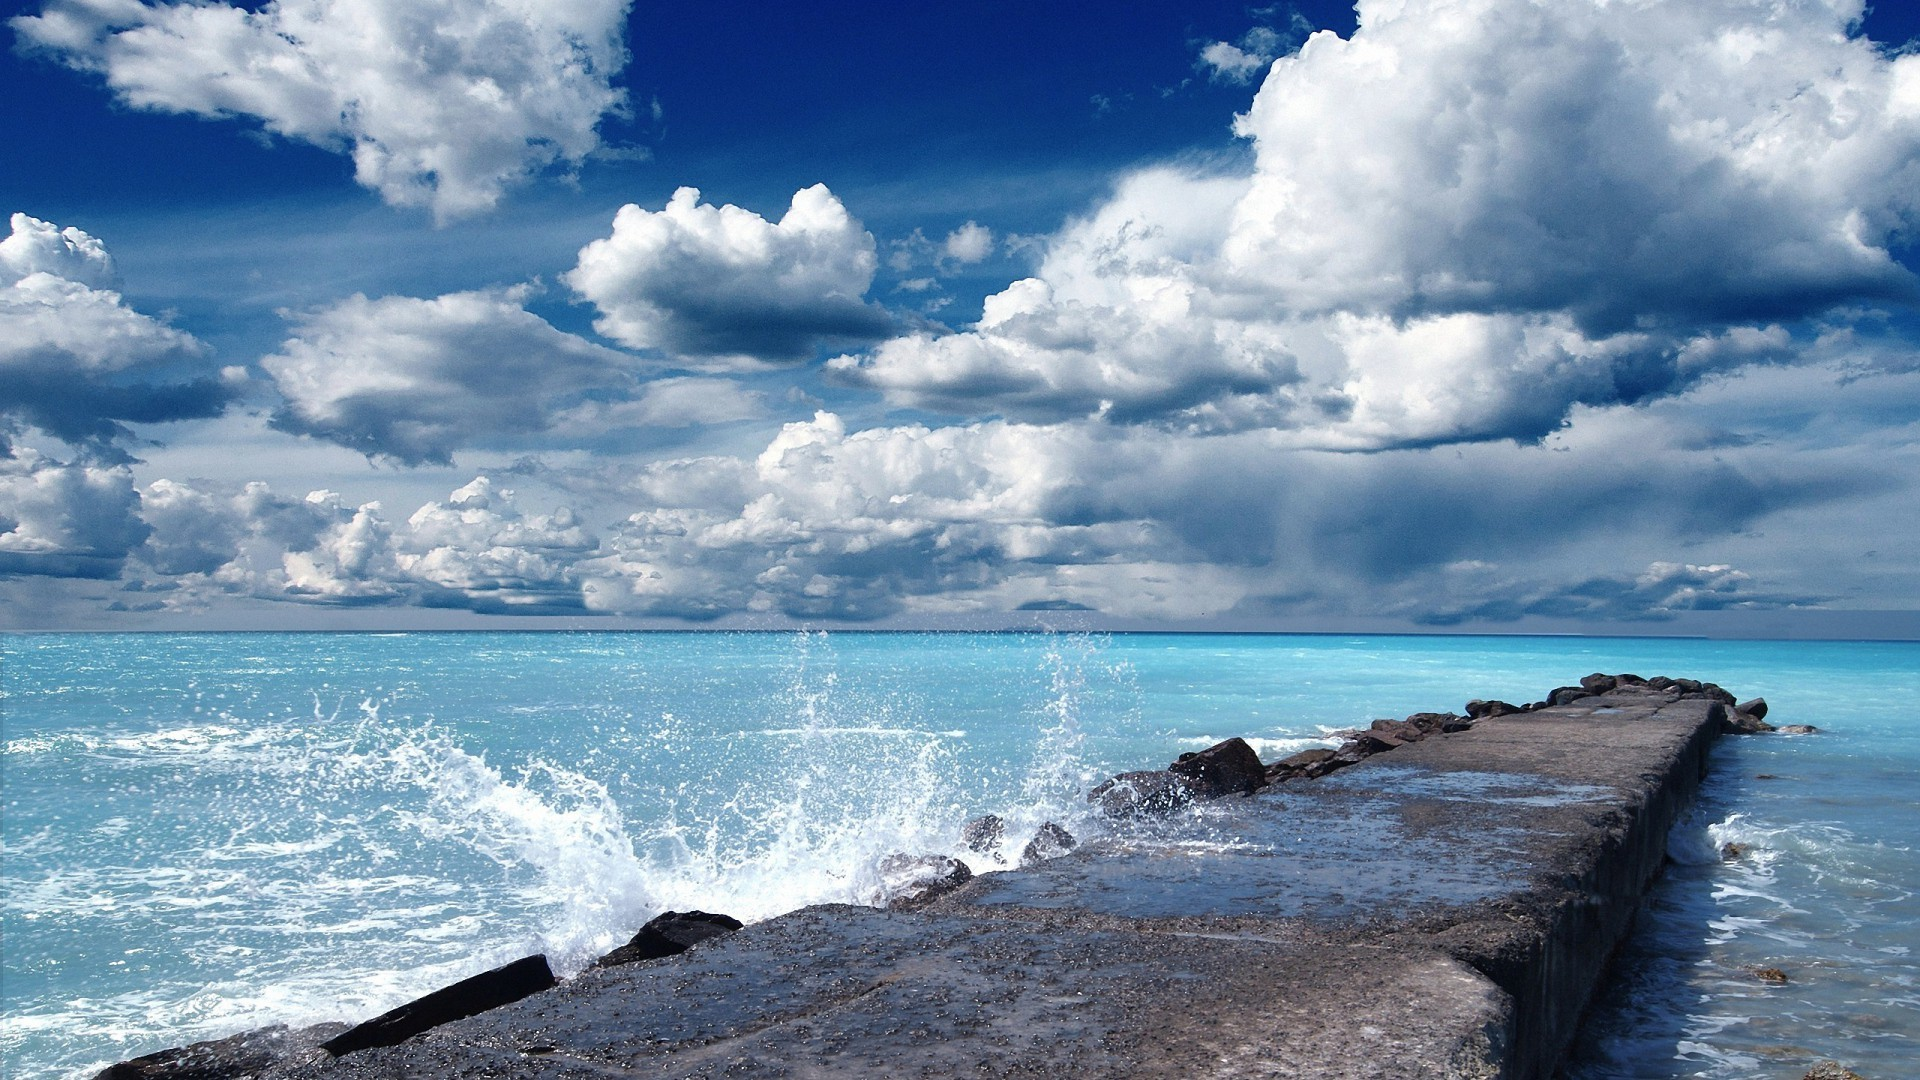 Retina Wallpaper Beach Sea Hd Desktop Wallpapers: Cool Ocean Backgrounds ·① WallpaperTag